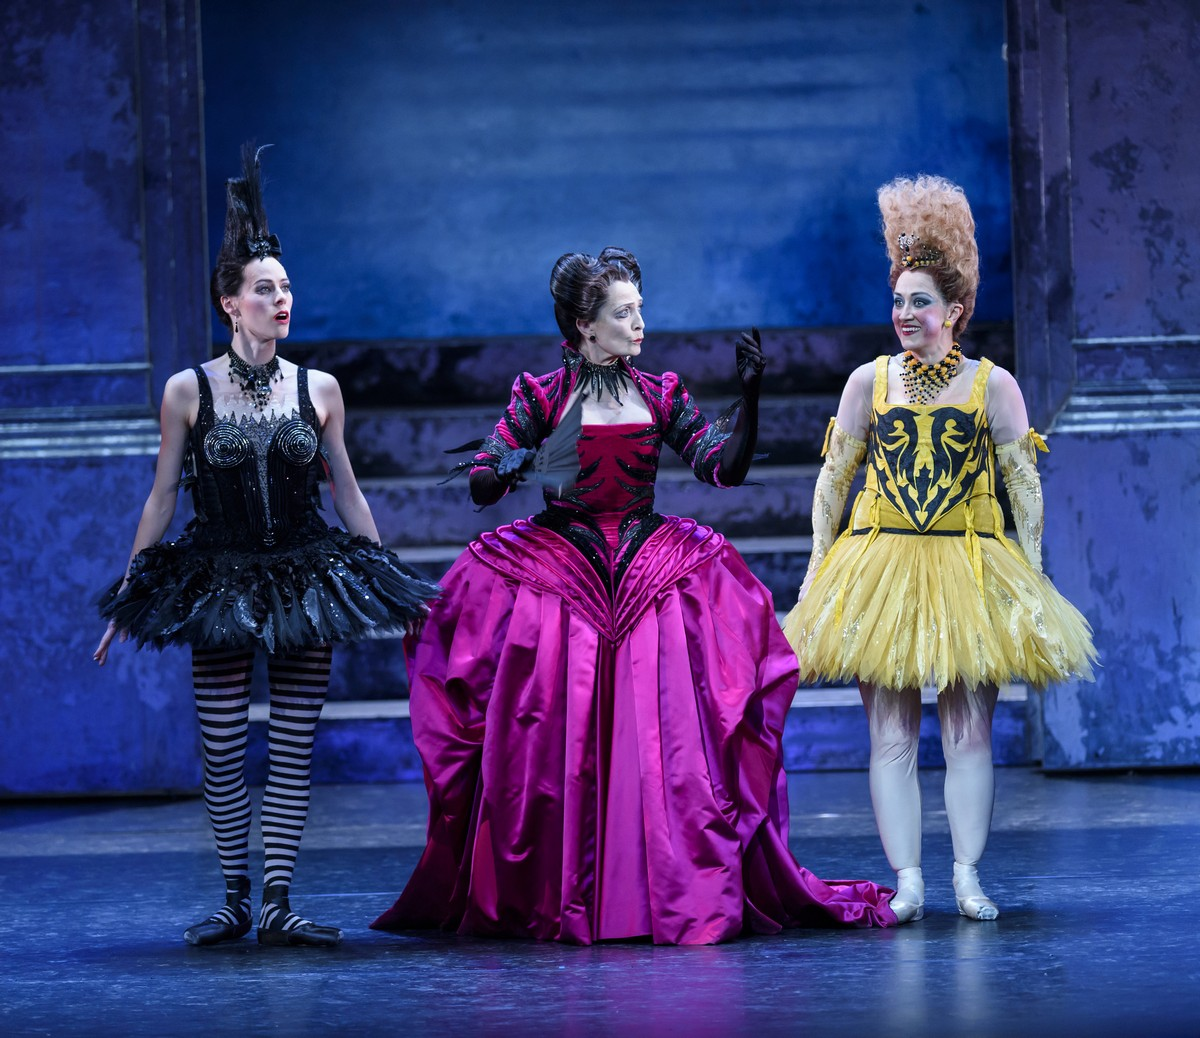 Samara Downs as Skinny, Marion Tait as the Stepmother and Laura Purkiss as Dumpy, photo by Bill Cooper